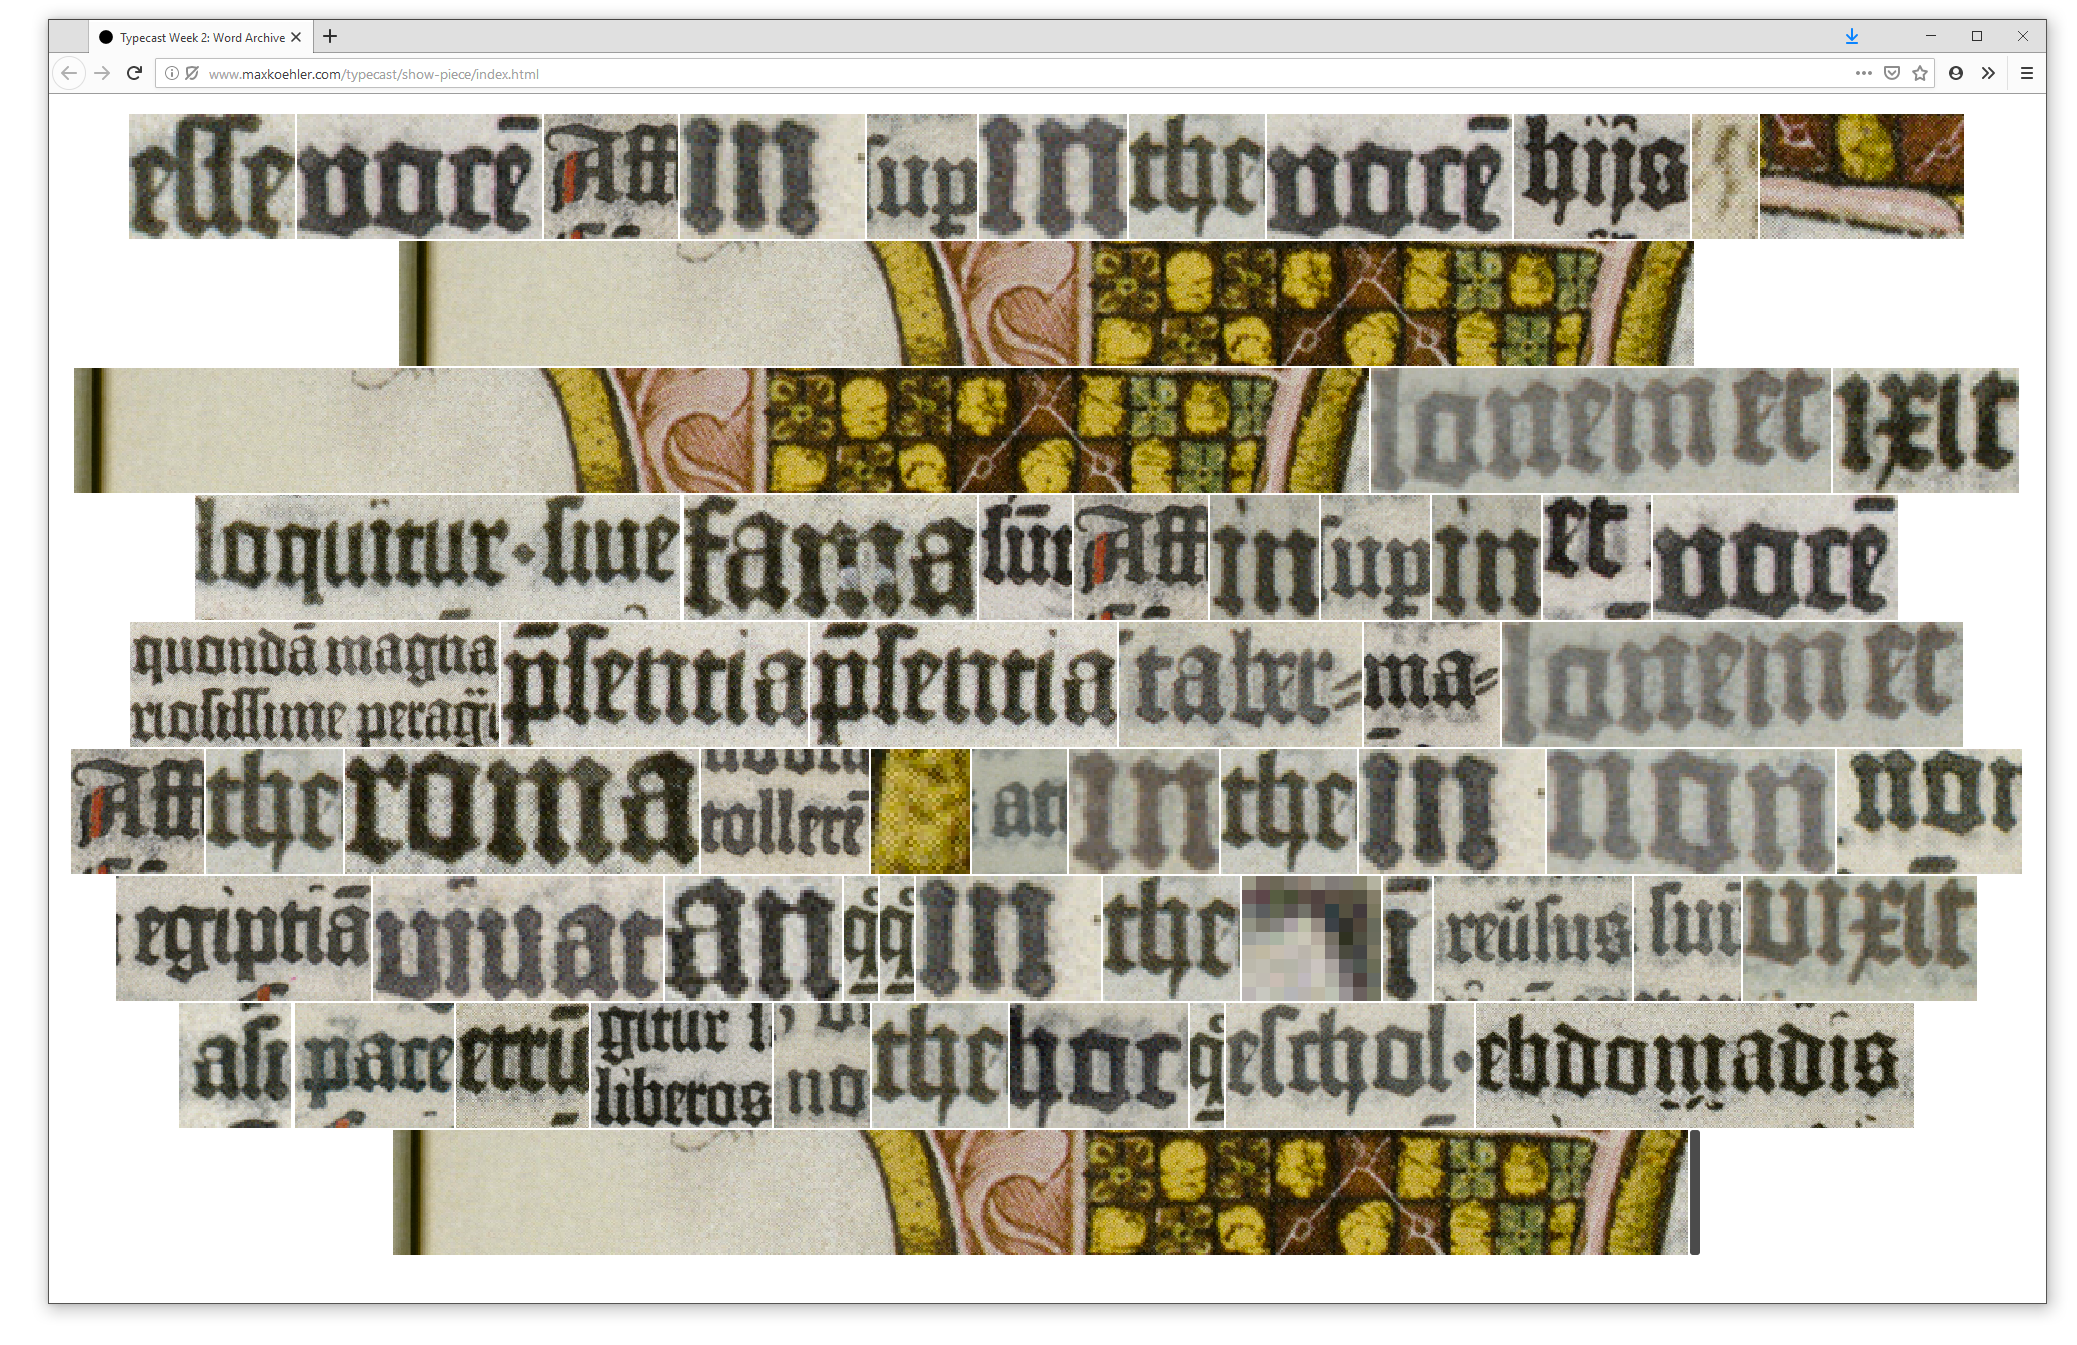 Web application showing words from the Gutenberg Bible